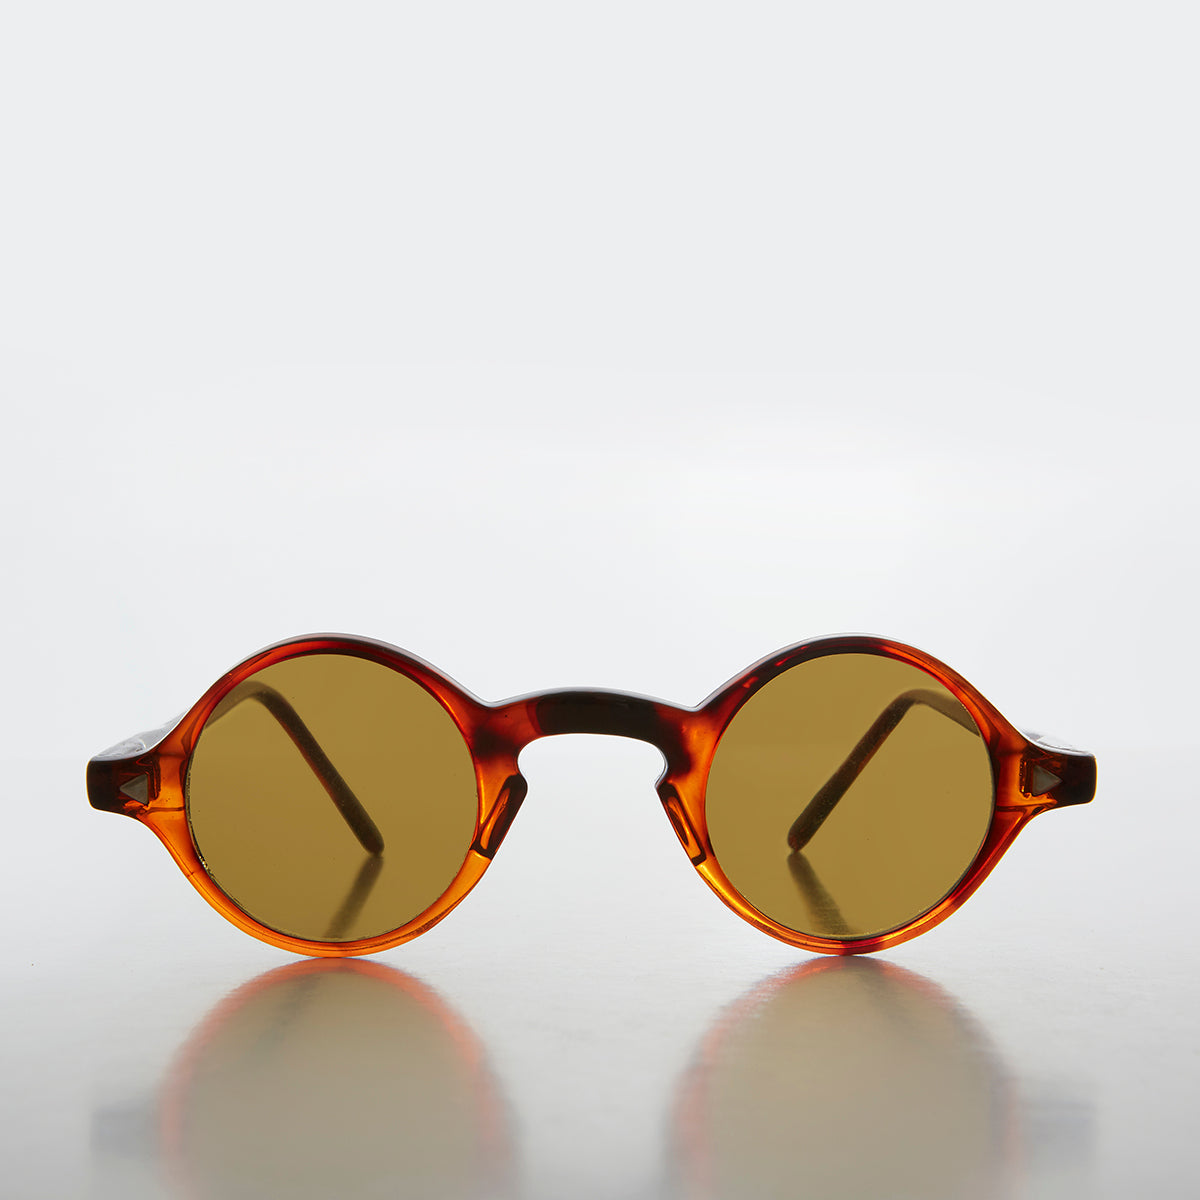 Small Round Spectacles Vintage Sunglass - Dubois